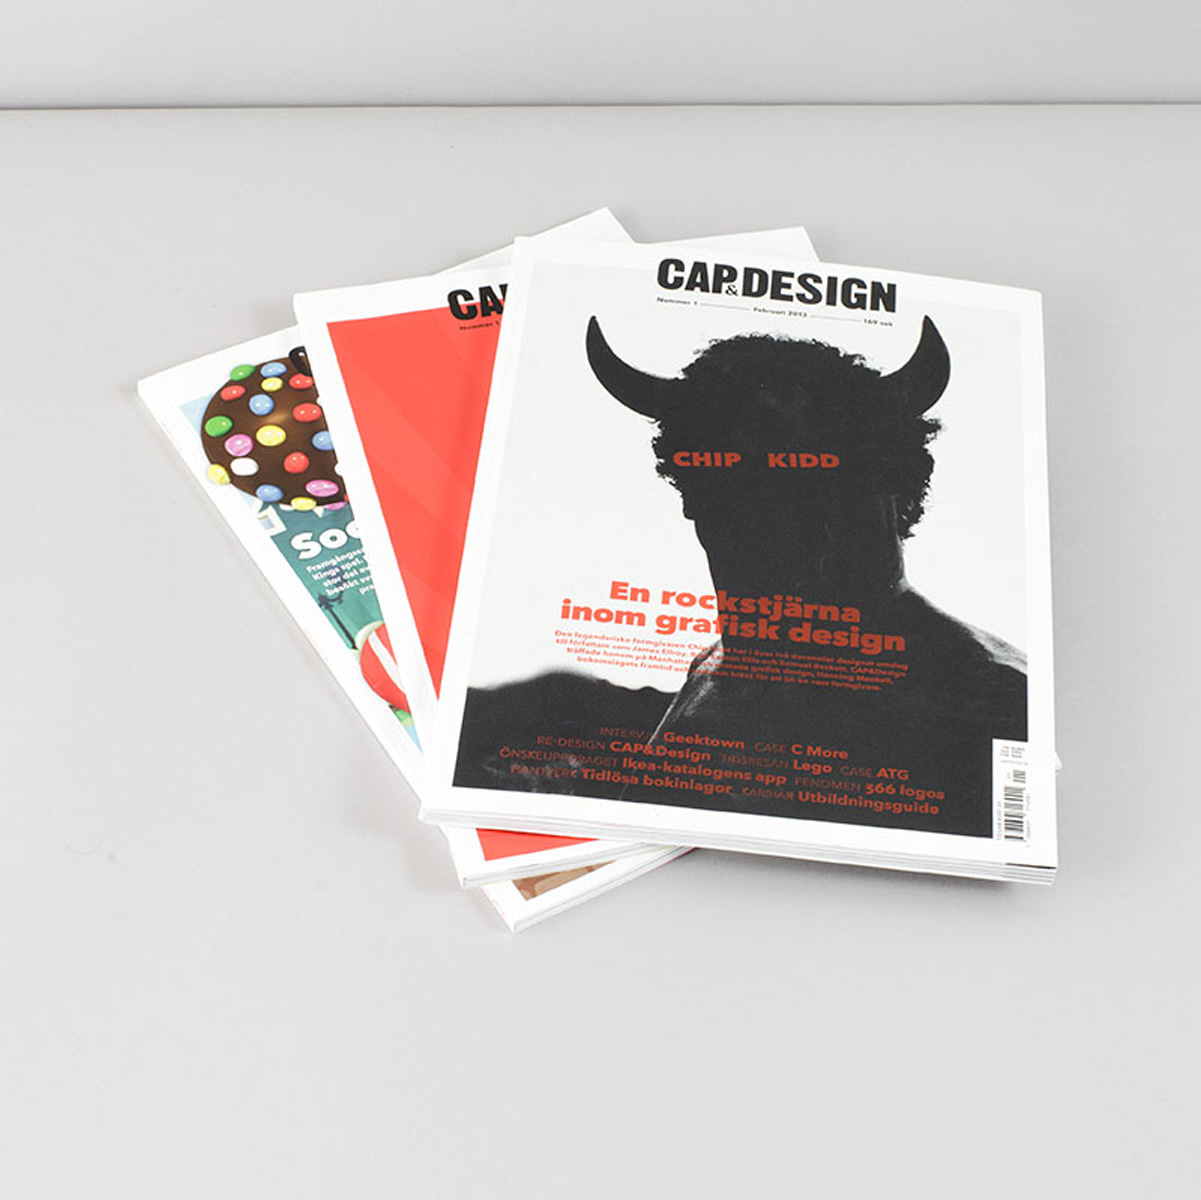 Cap & Design Magazin